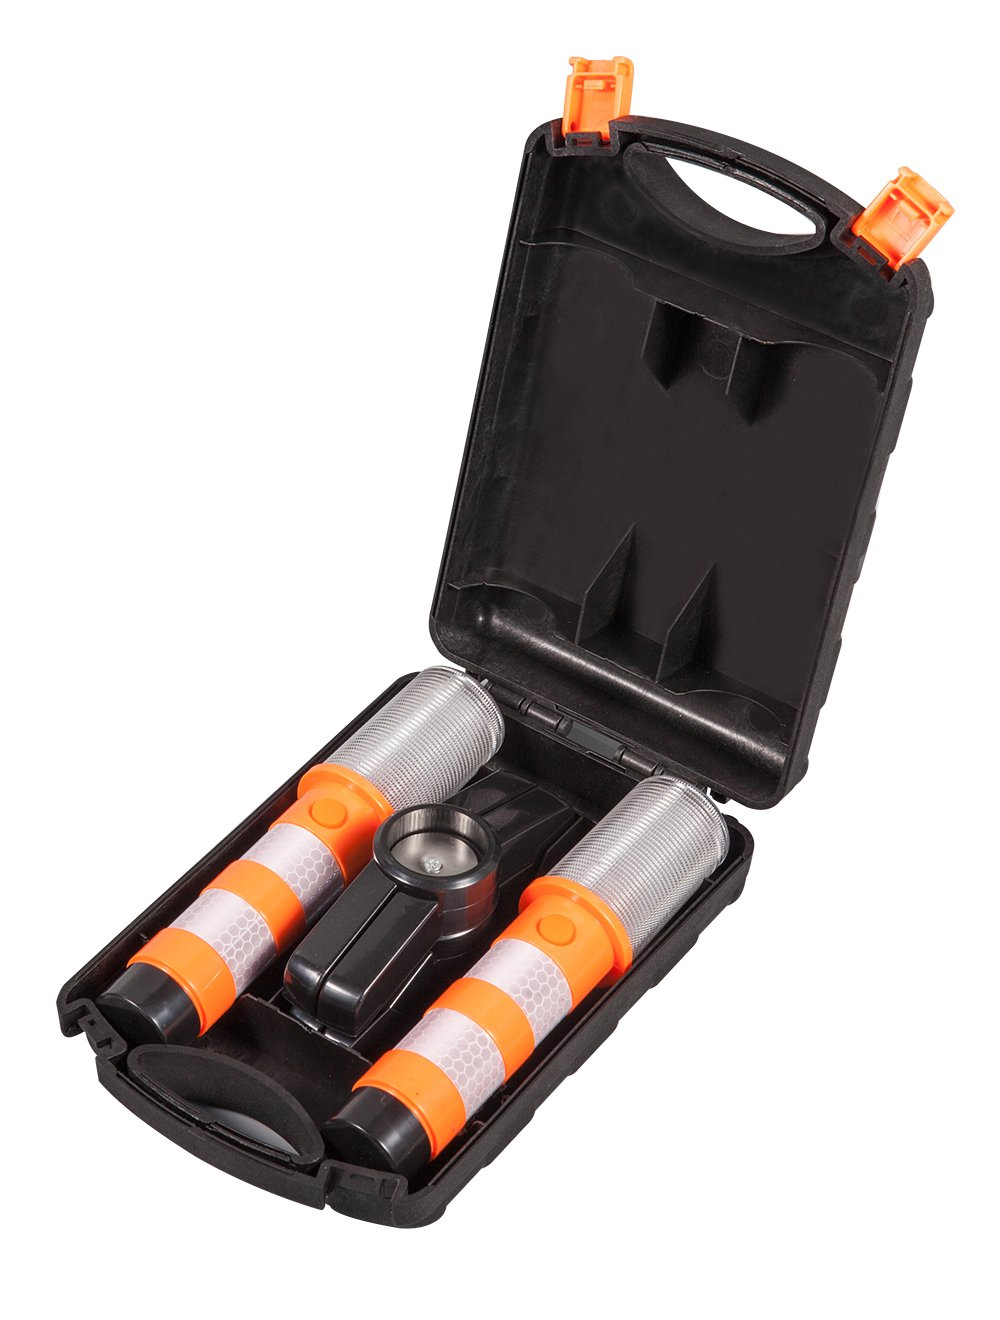 Boli Red LED Emergency Roadside Flares - Magnetic Base and Upright Stand - Road Flares come with Batteries and Solid Storage case.